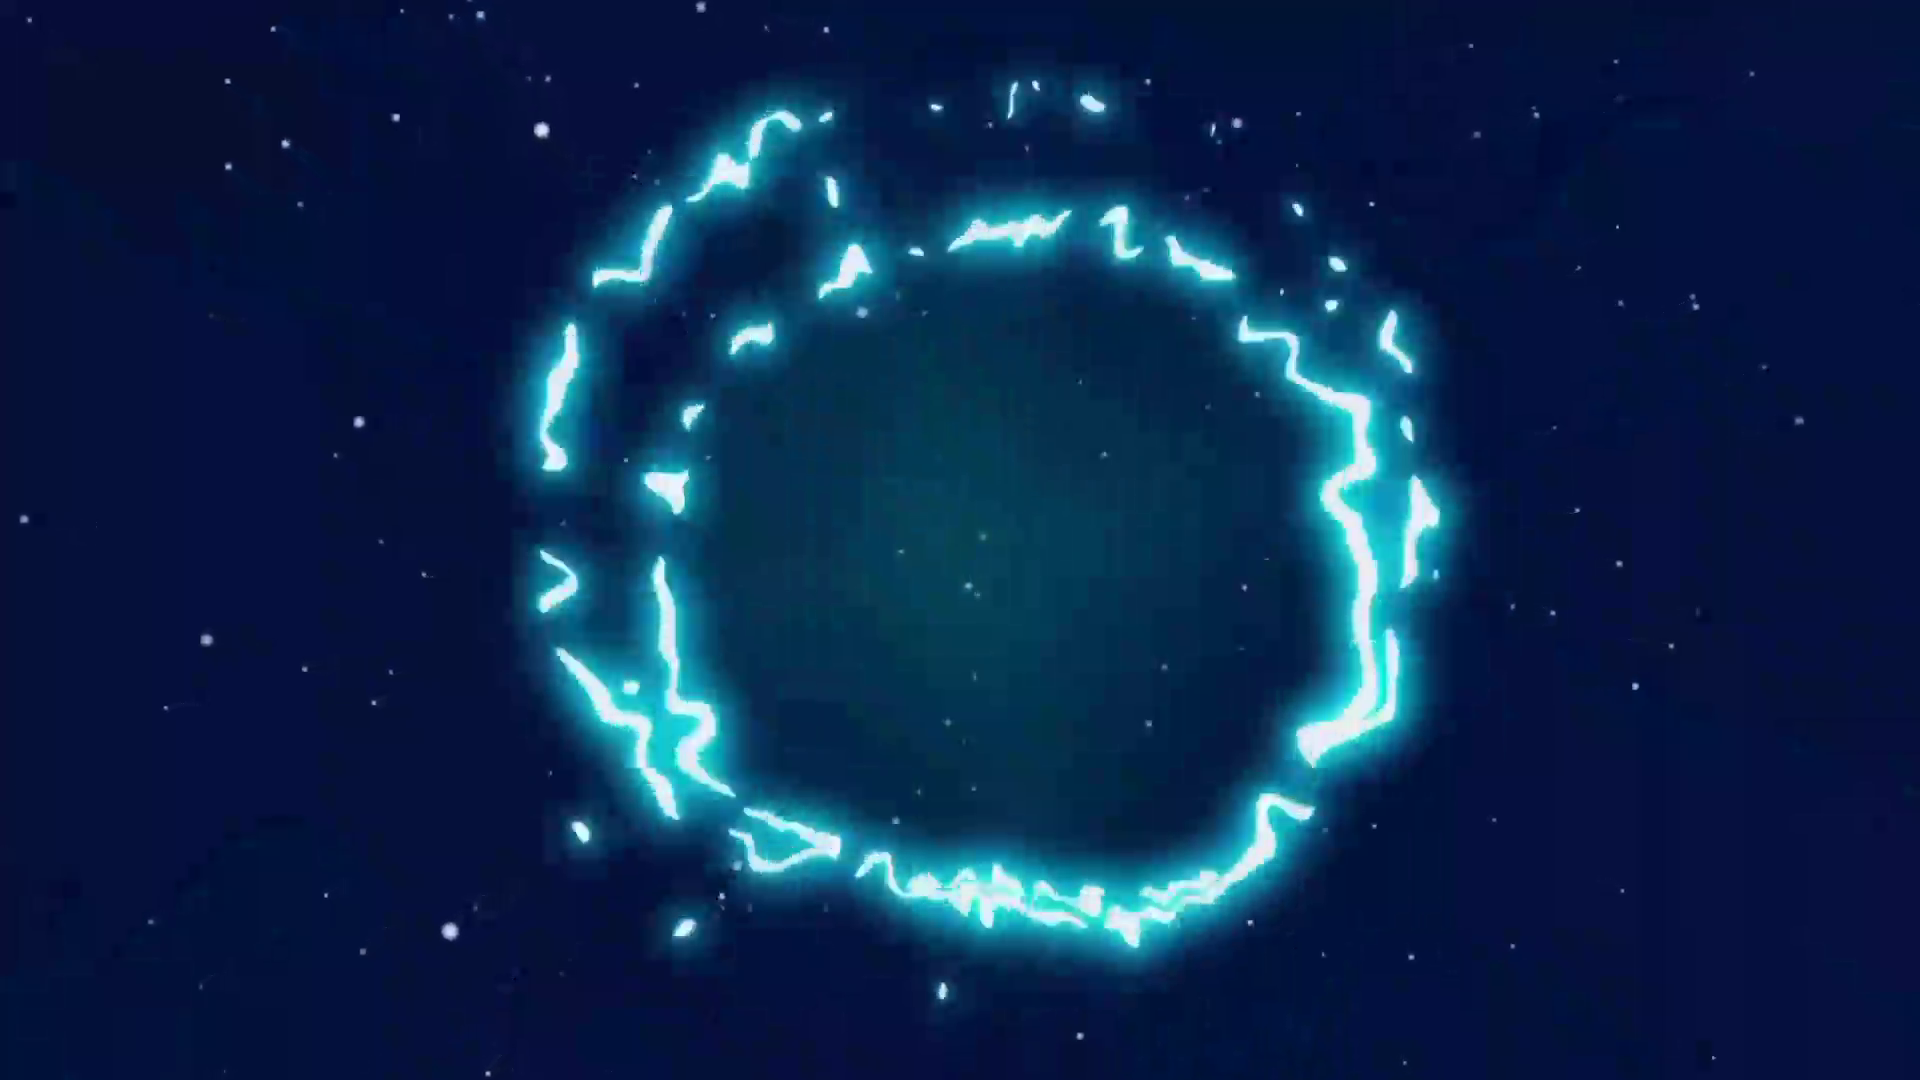 TEXASVET'S PRO WHITE PODCAST EP. 21 - 2OCT2021 MY GUEST APPEARANCE ON HANDSOME TRUTH'S LIVESTREAM